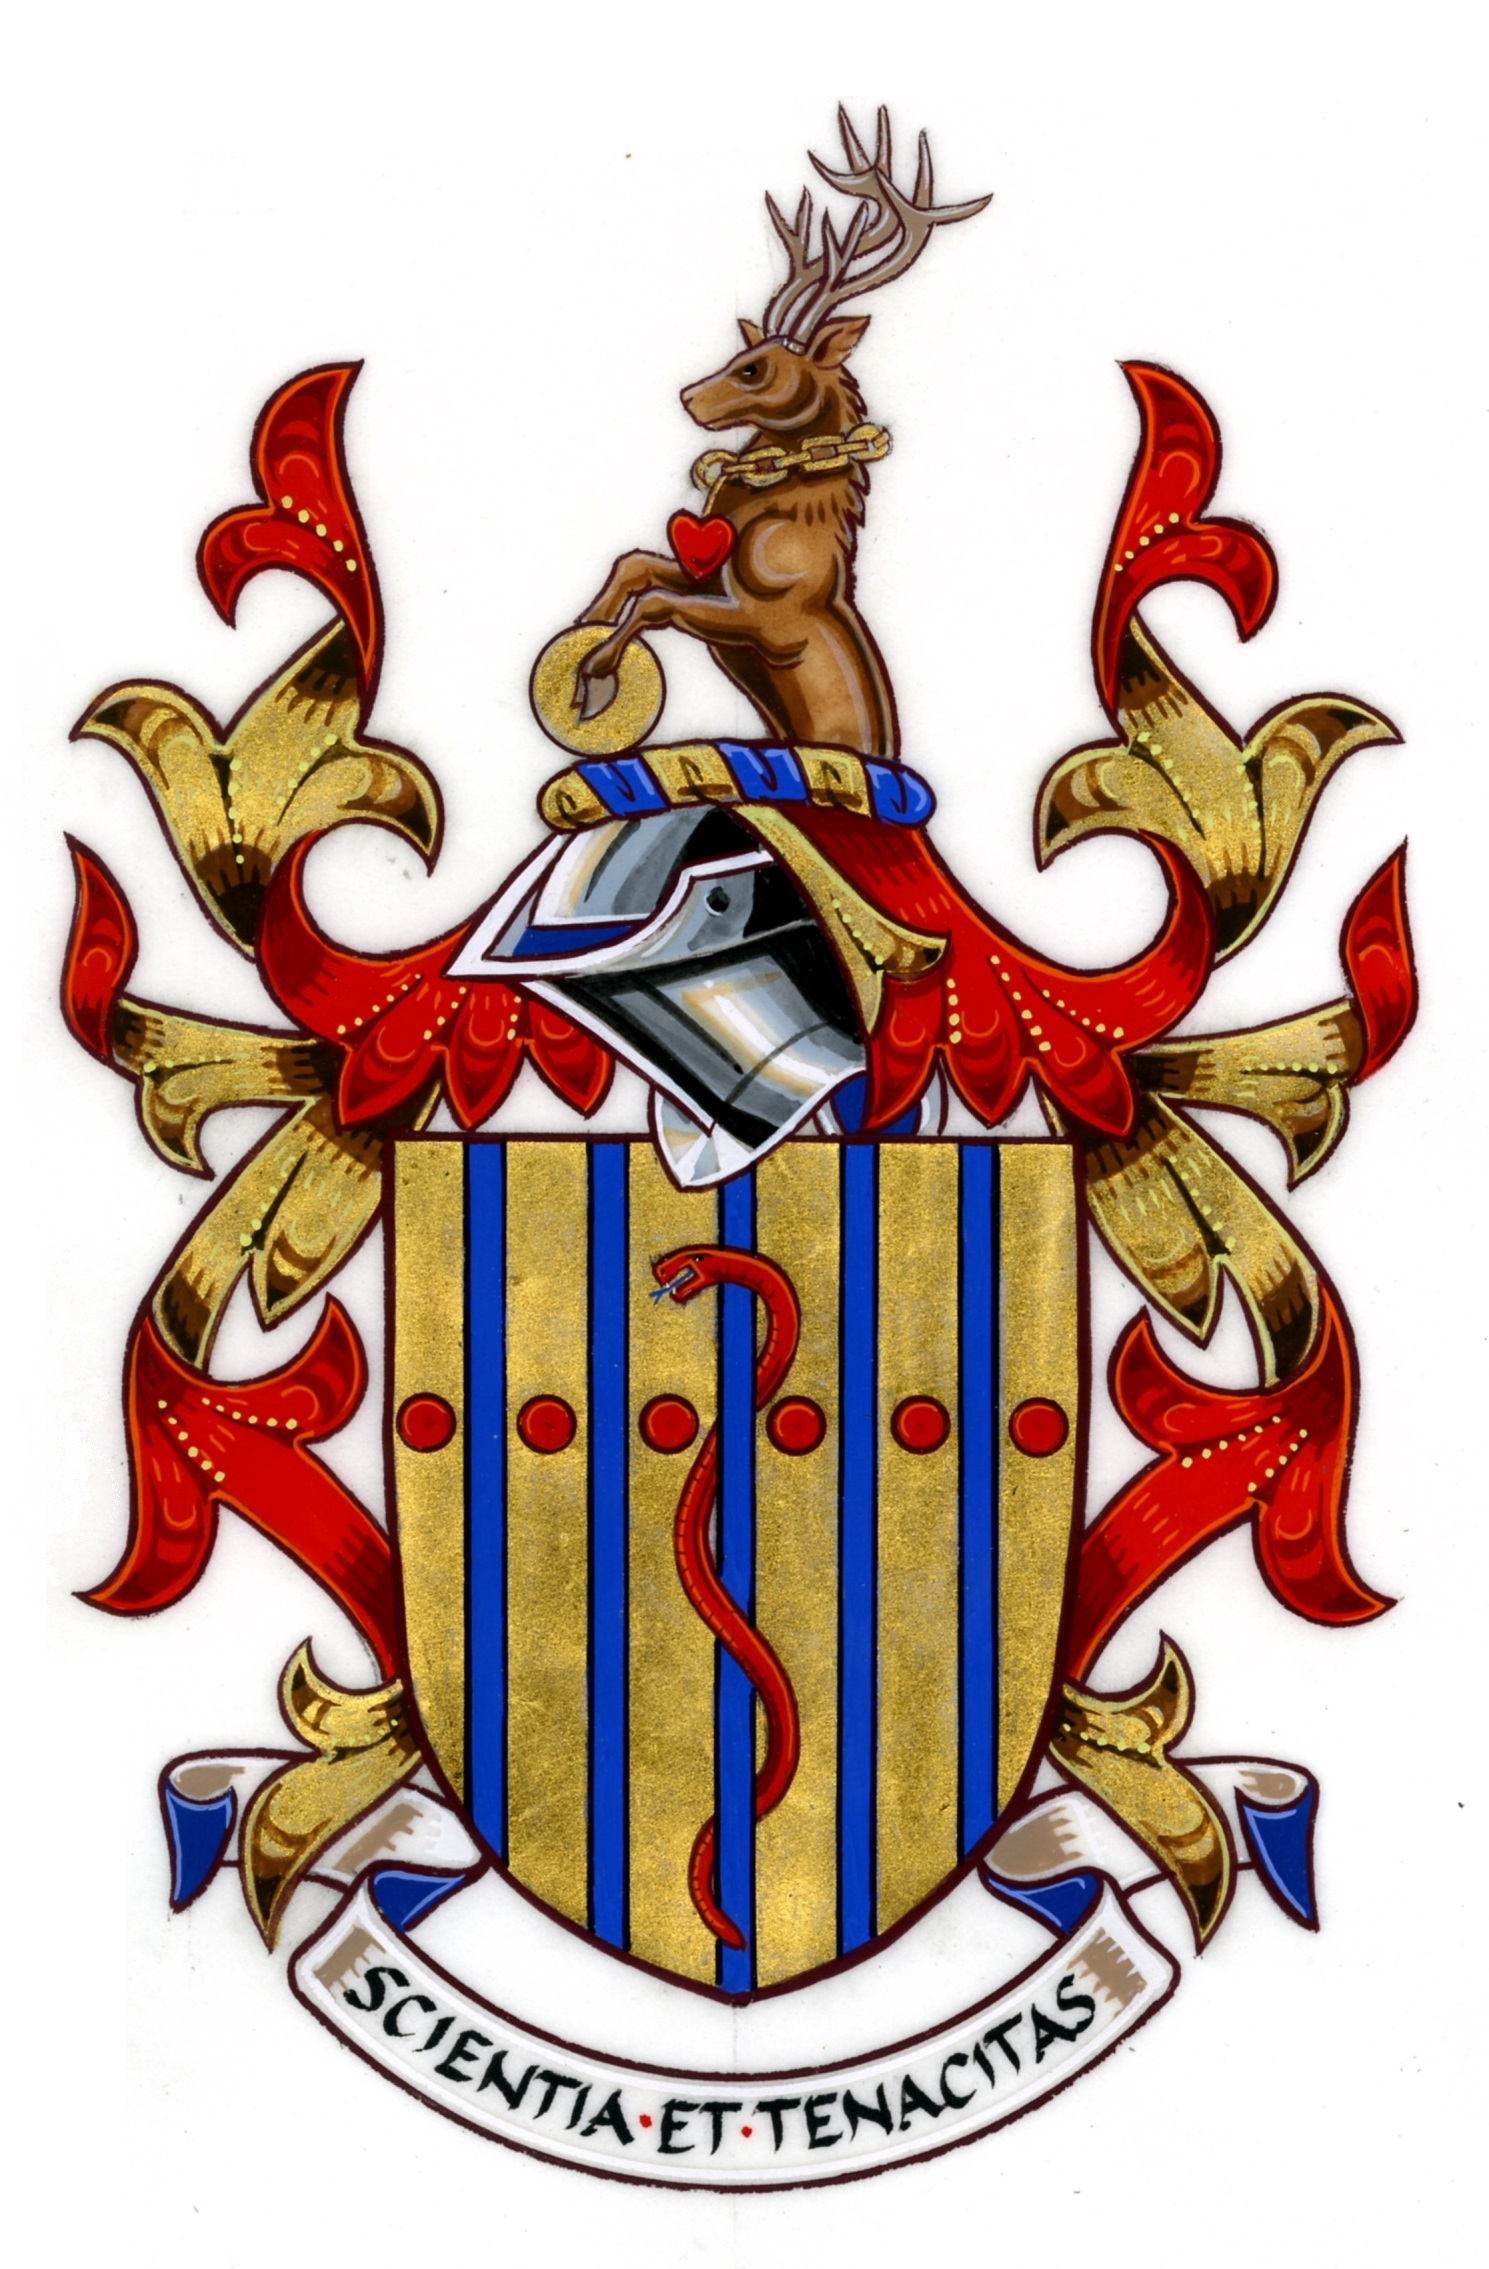 Ohri S K Arms and Crest